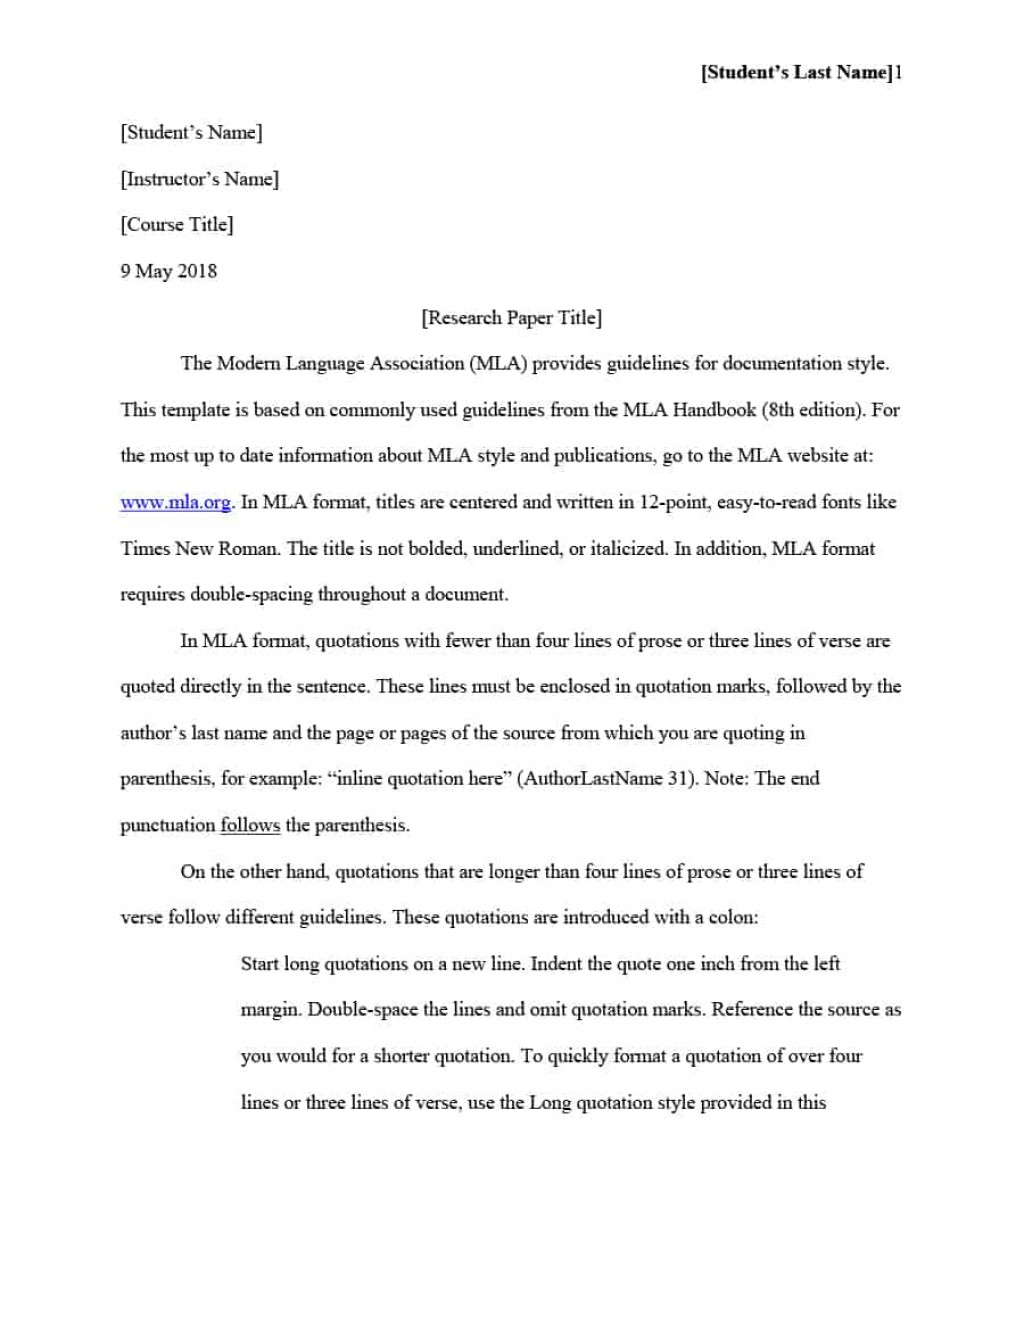 001 Research Paper Mla Format Template In Excellent Style Example Title Page Outline Large